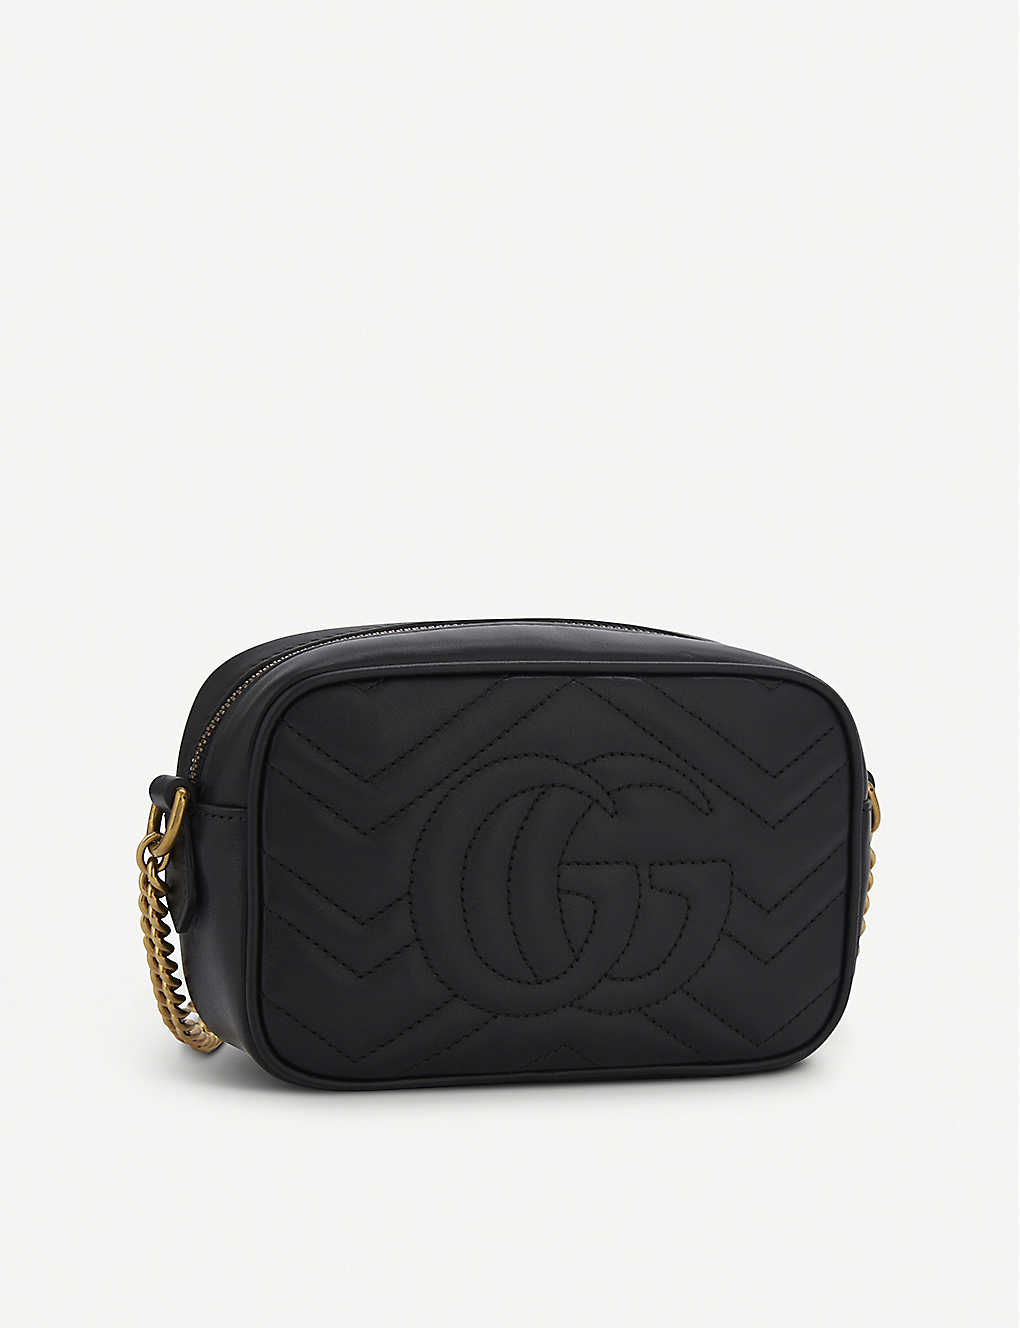 f581cd97e172 GUCCI - GG Marmont mini quilted leather cross-body bag | Selfridges.com